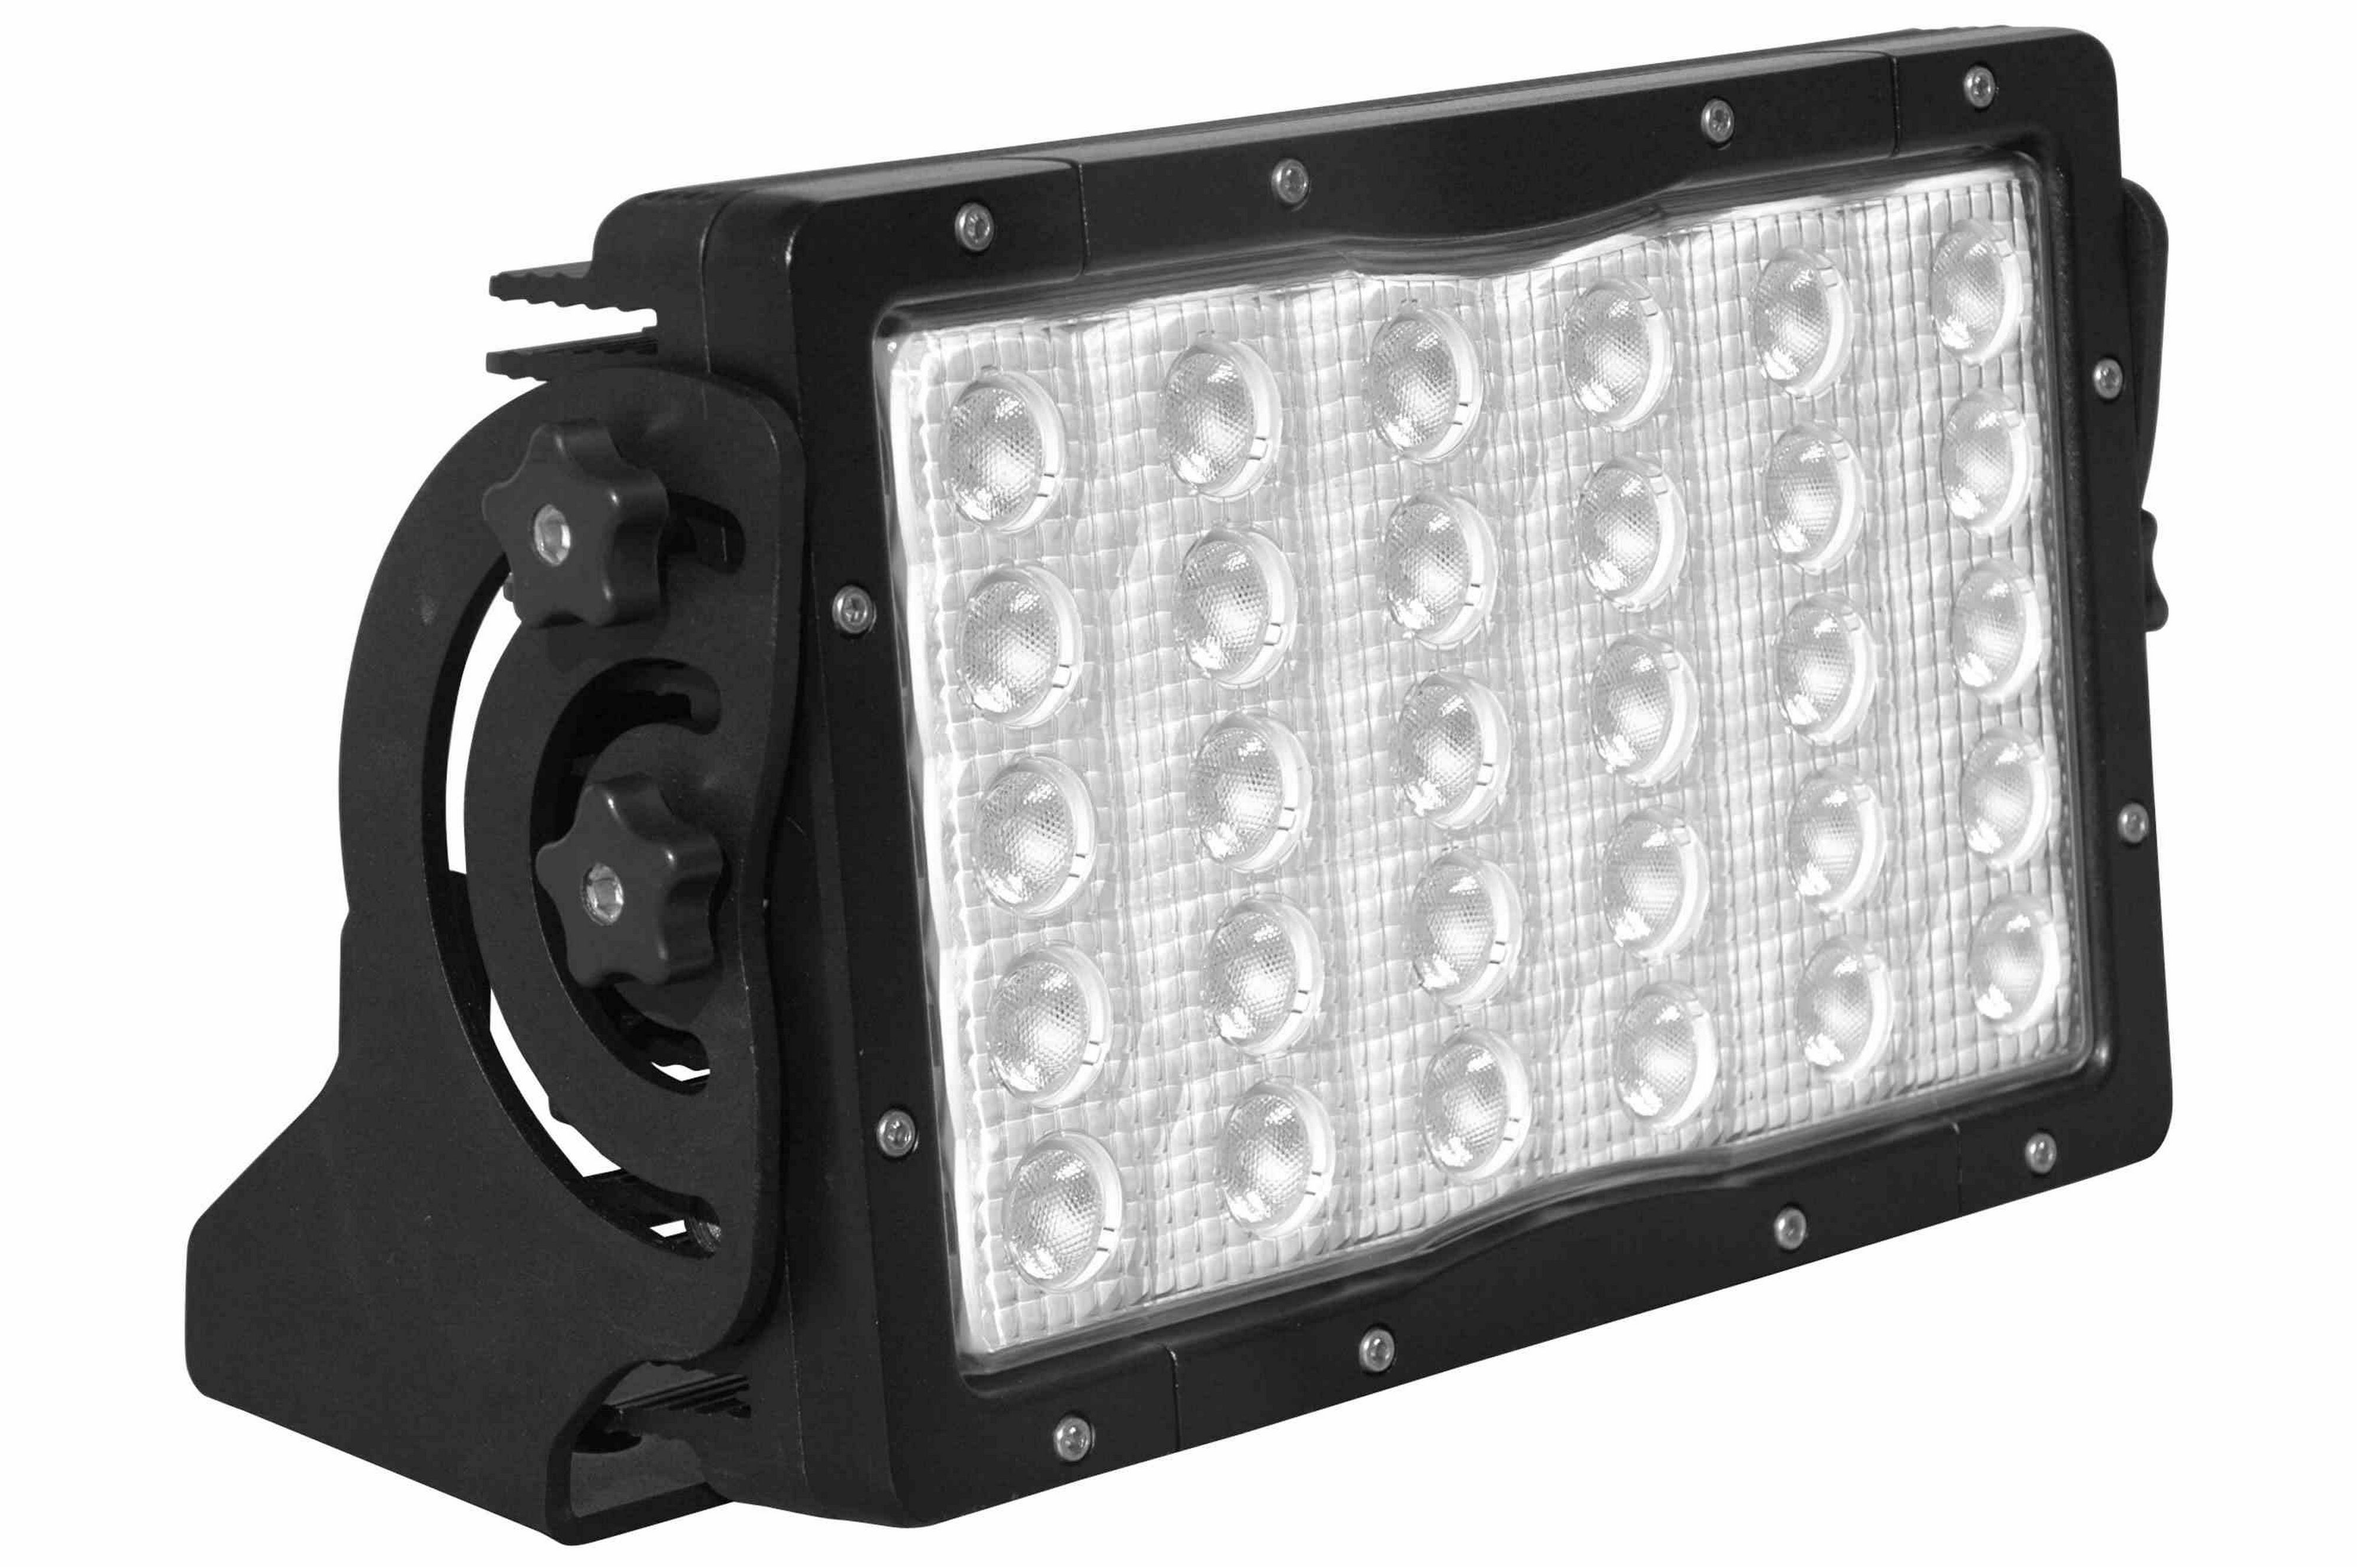 marine grade 150 watt led flood light 10 32 volts dc 14 790 lumens 12 amp draw larson. Black Bedroom Furniture Sets. Home Design Ideas